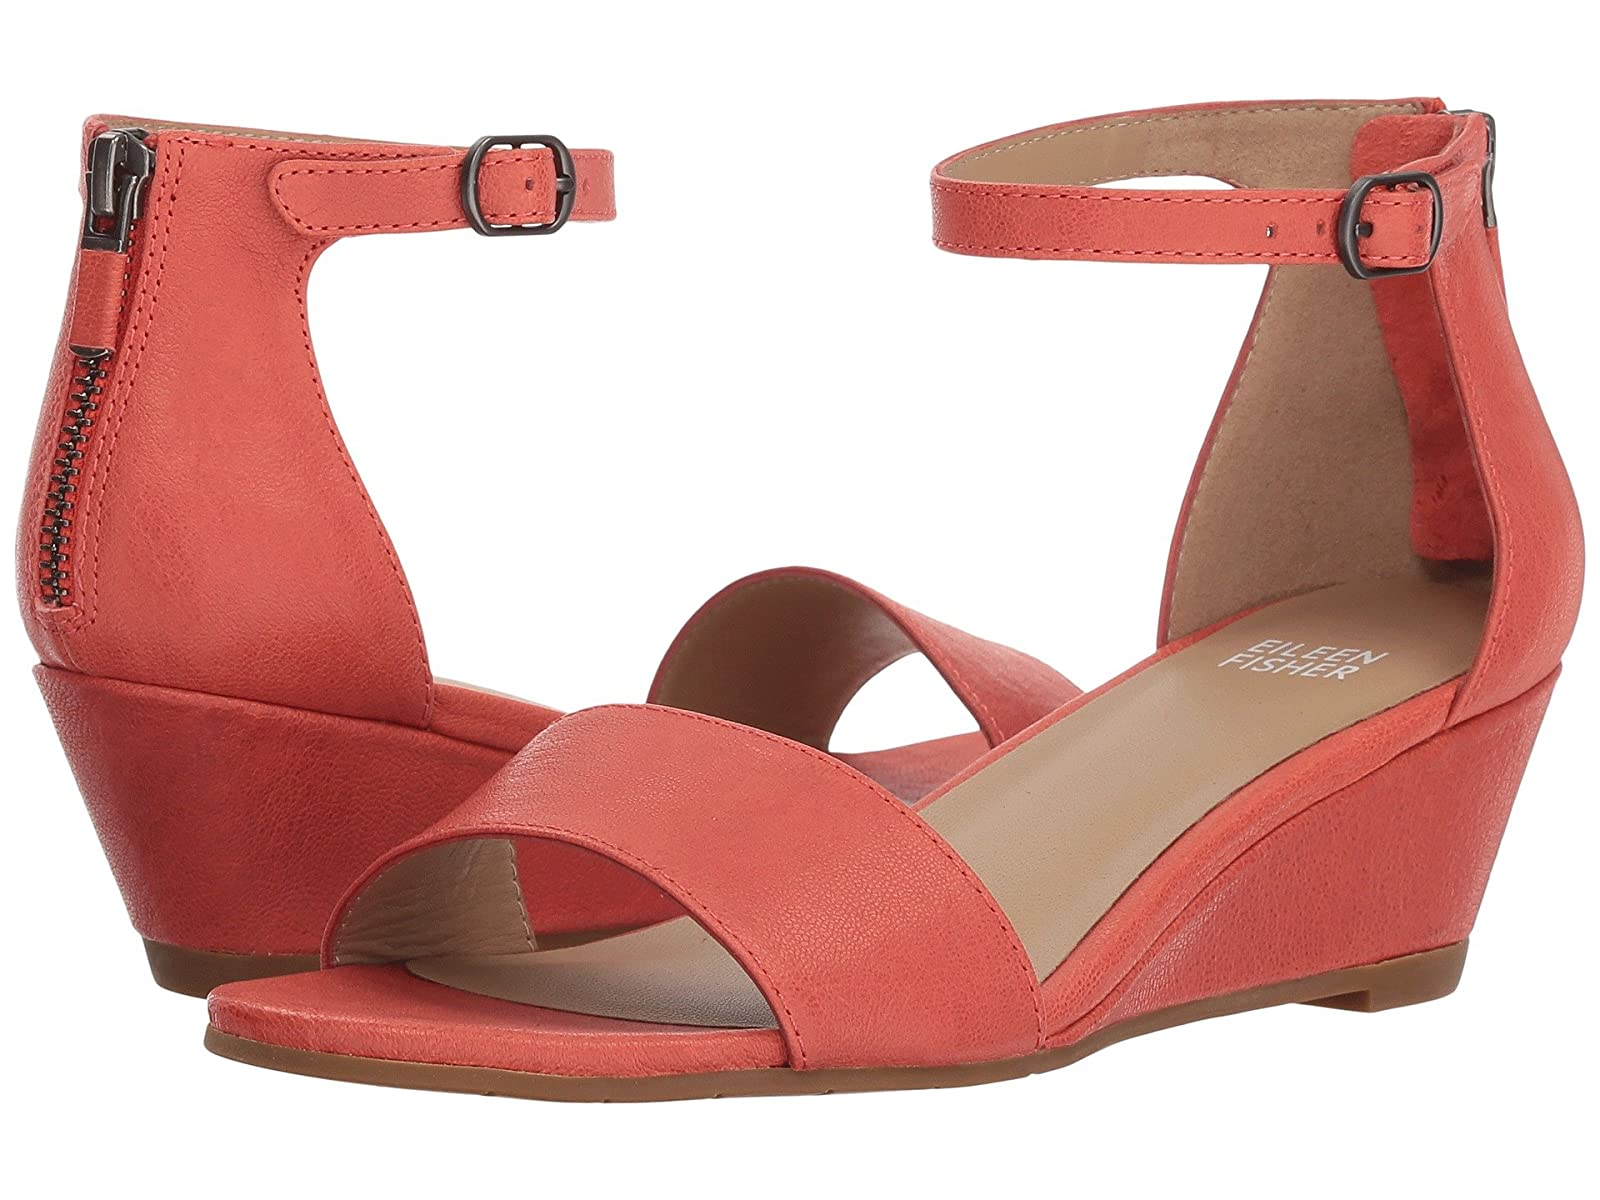 Eileen Fisher MaraCheap and distinctive eye-catching shoes